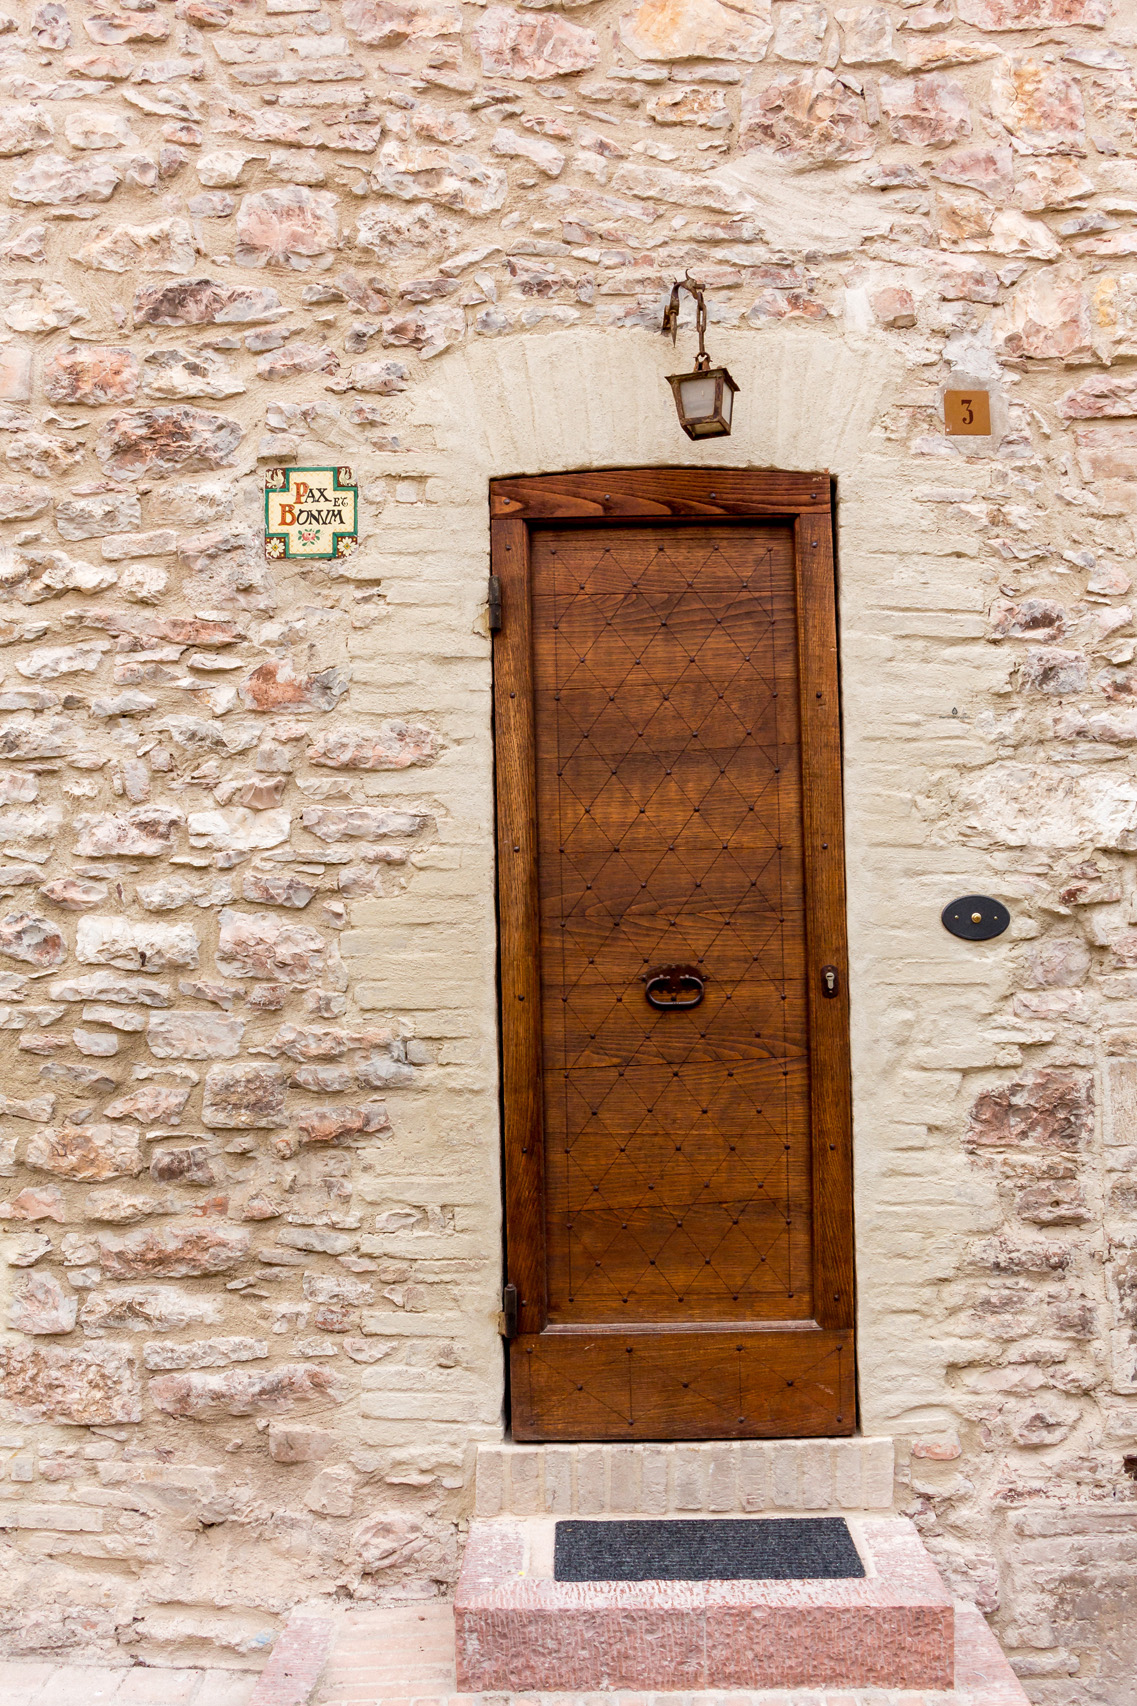 The doors of Assisi, Umbria